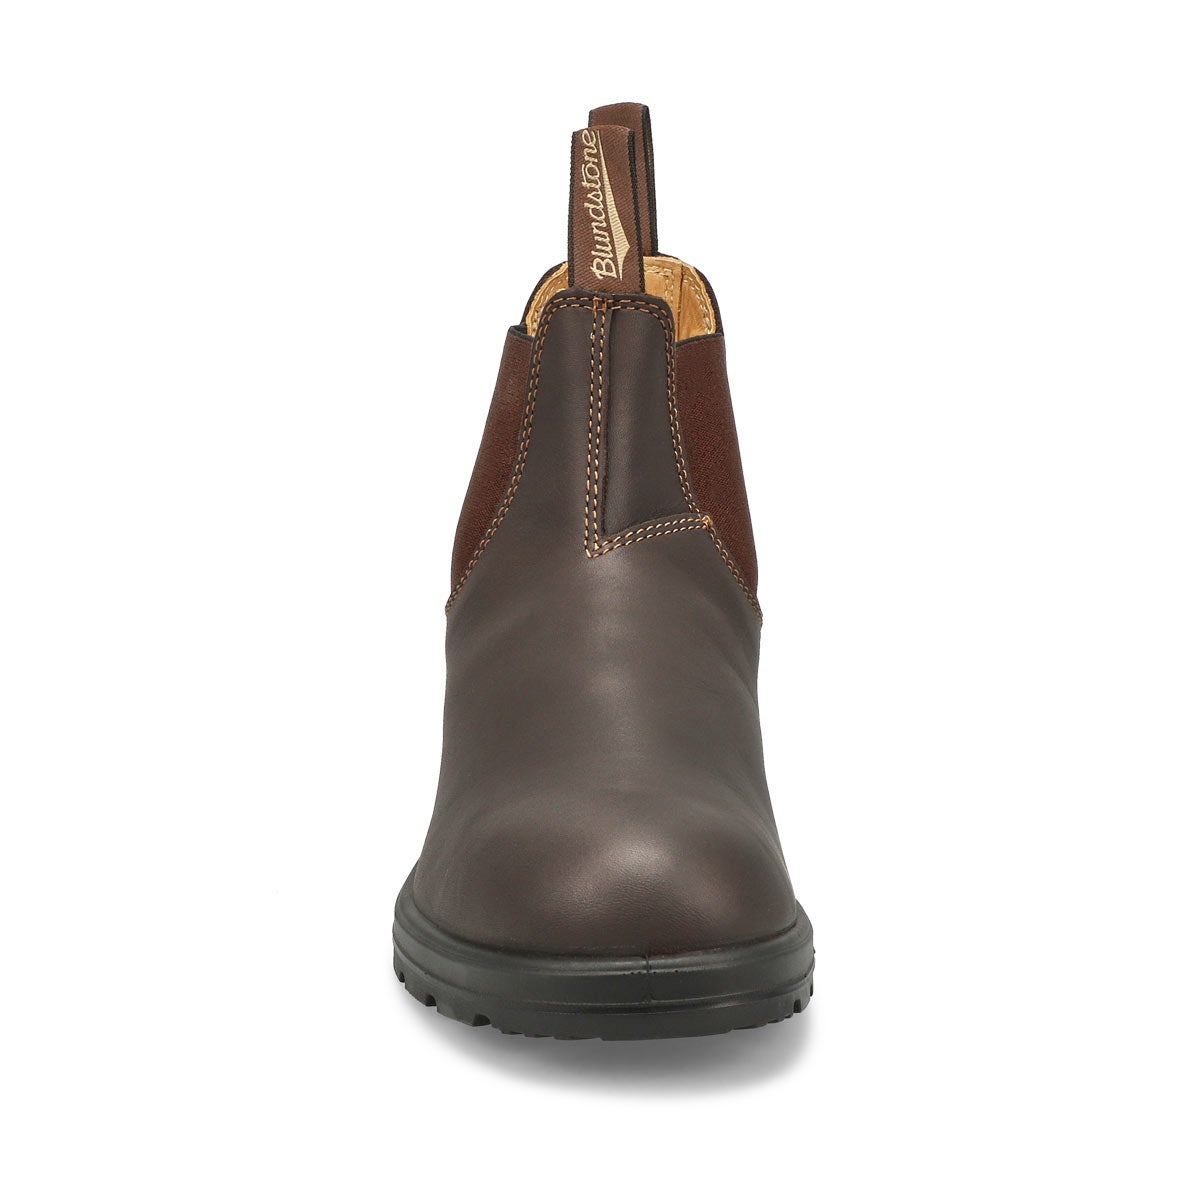 Unisex Original walnut twin gore boot